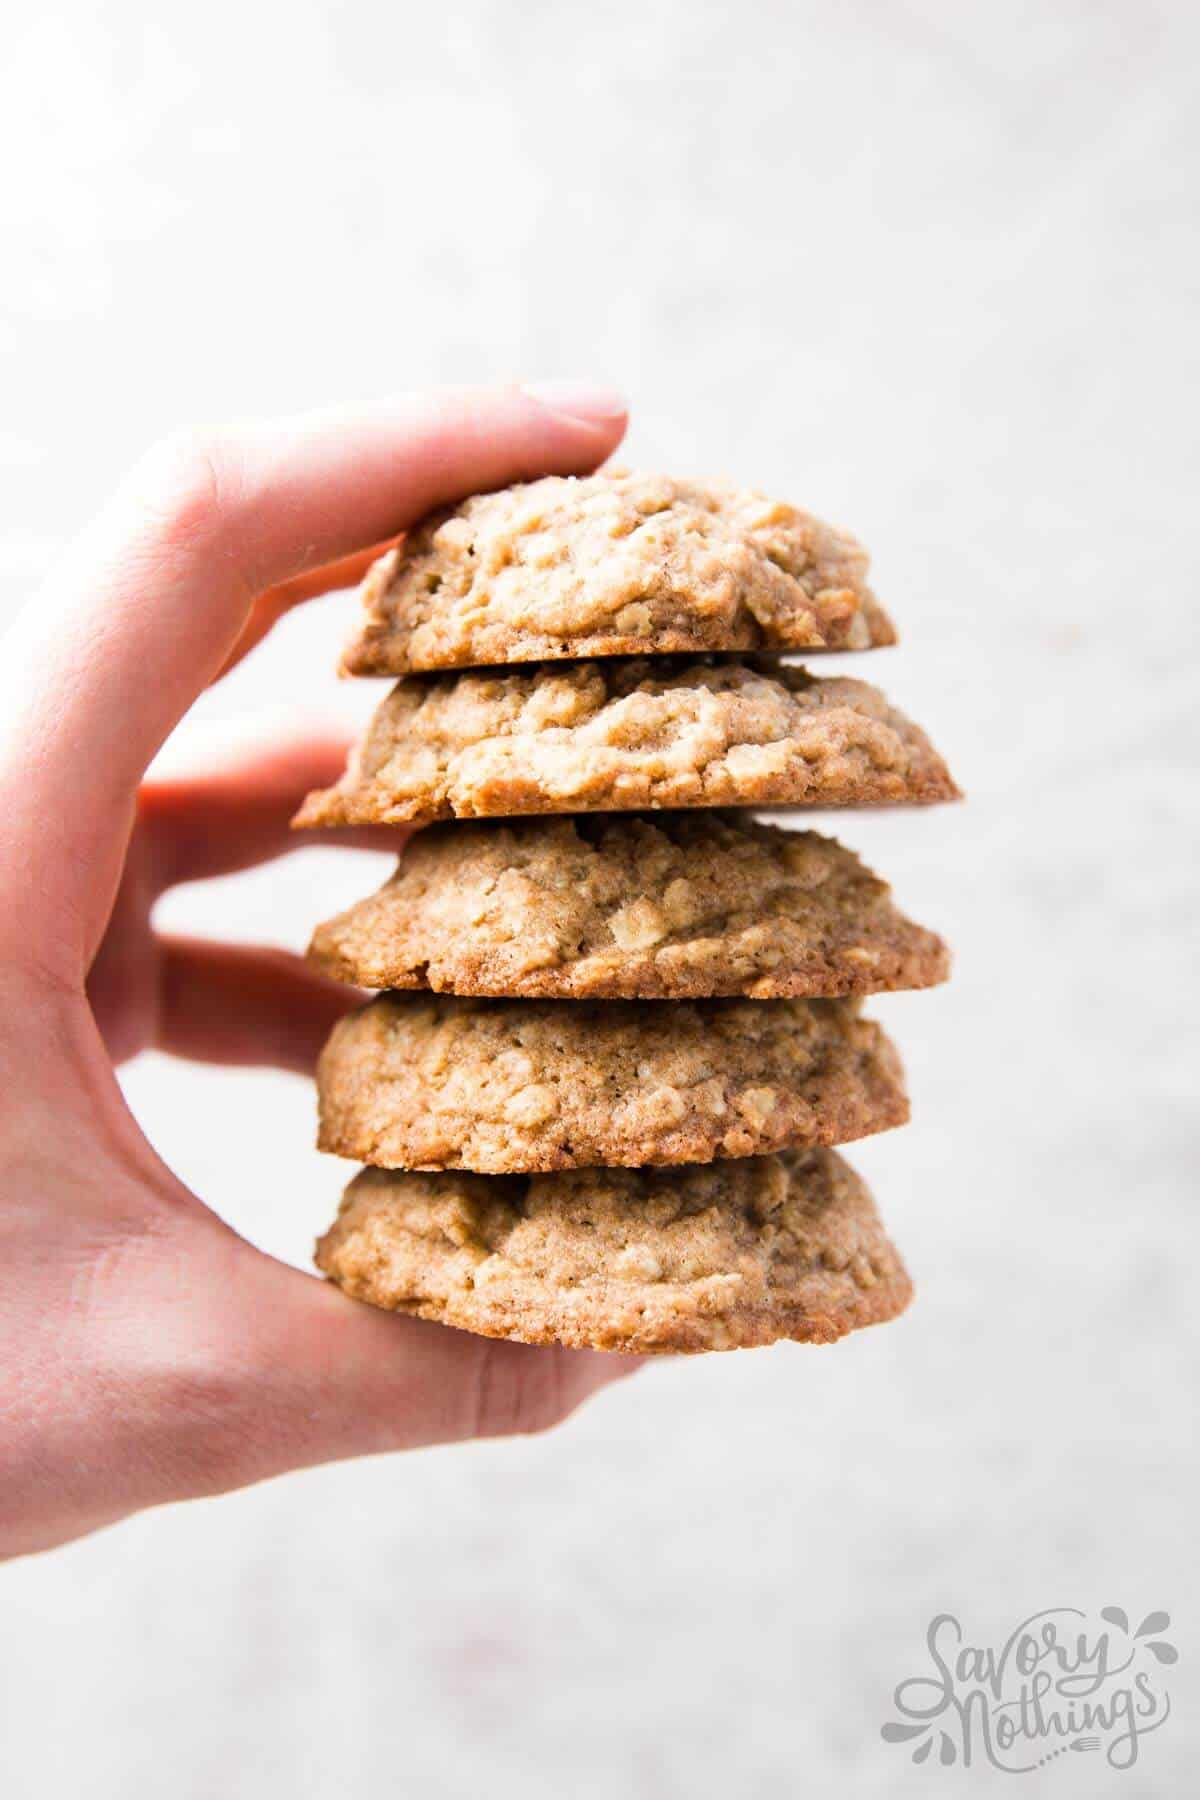 Recipes for oatmeal cookies from scratch